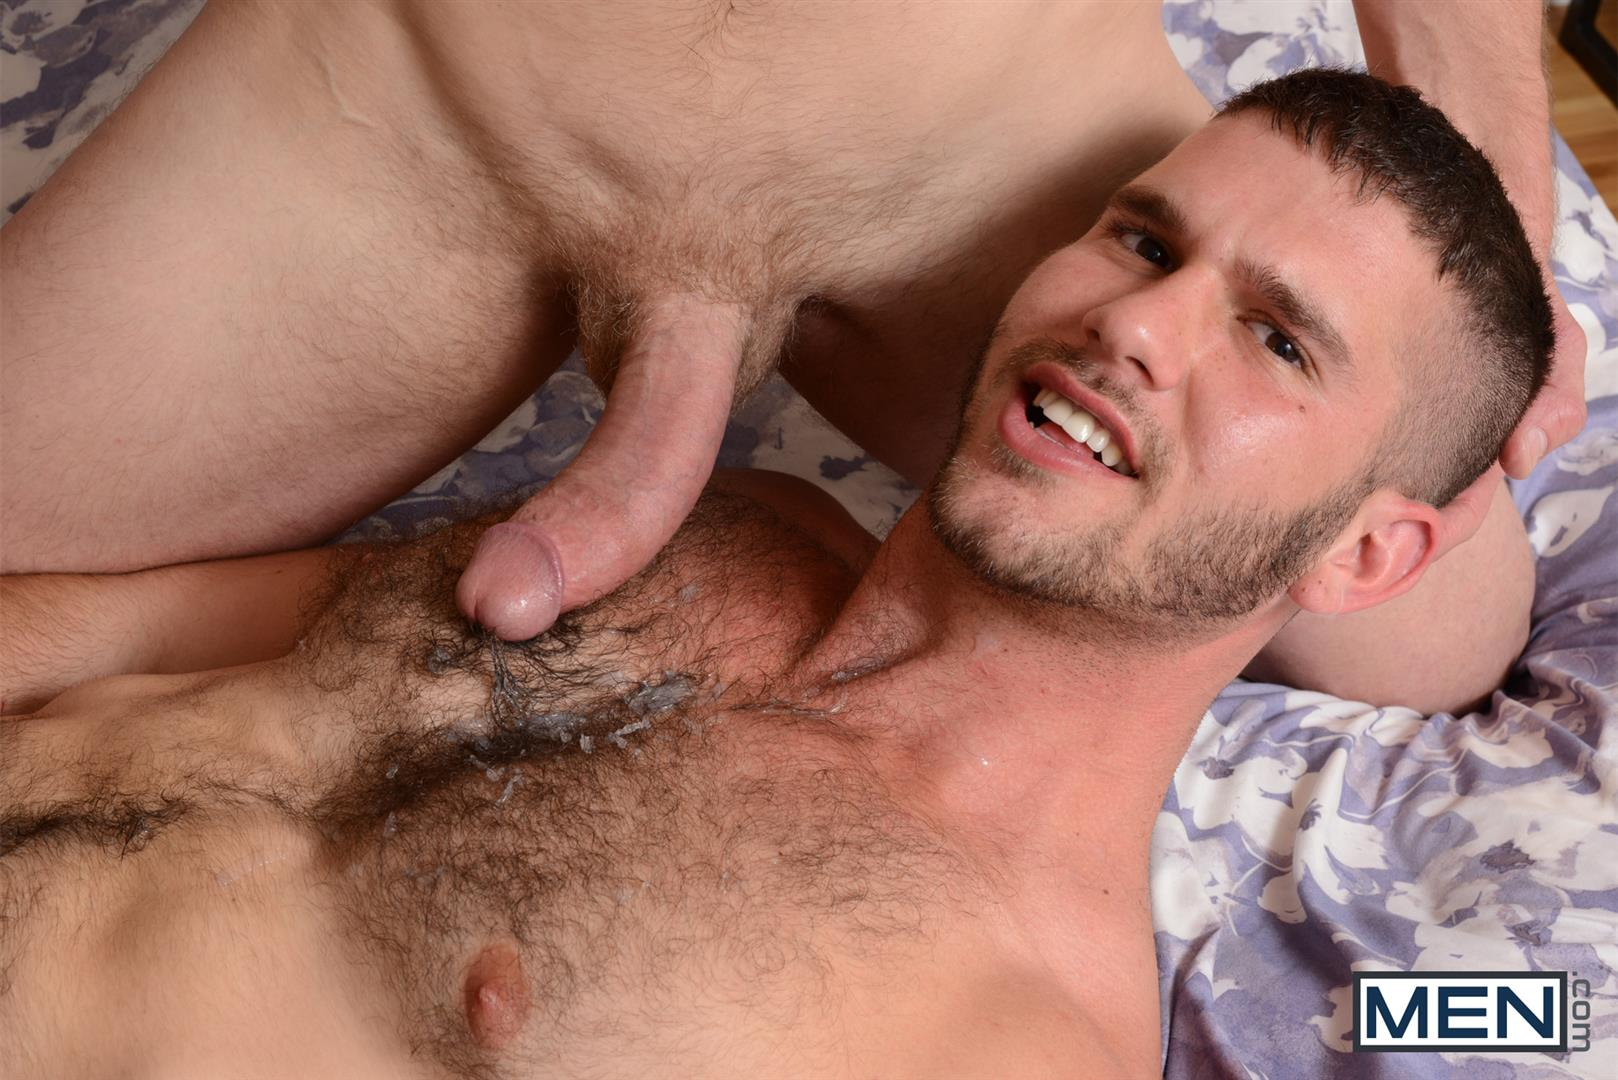 Men-Drill-My-Hole-Adam-Herst-and-Jimmy-Fanz-Hairy-Muscle-Jock-Getting-Fucked-Amateur-Gay-Porn-19 Hairy Muscle Hunk Jimmy Fanz Gets Fucked Hard By Adam Herst